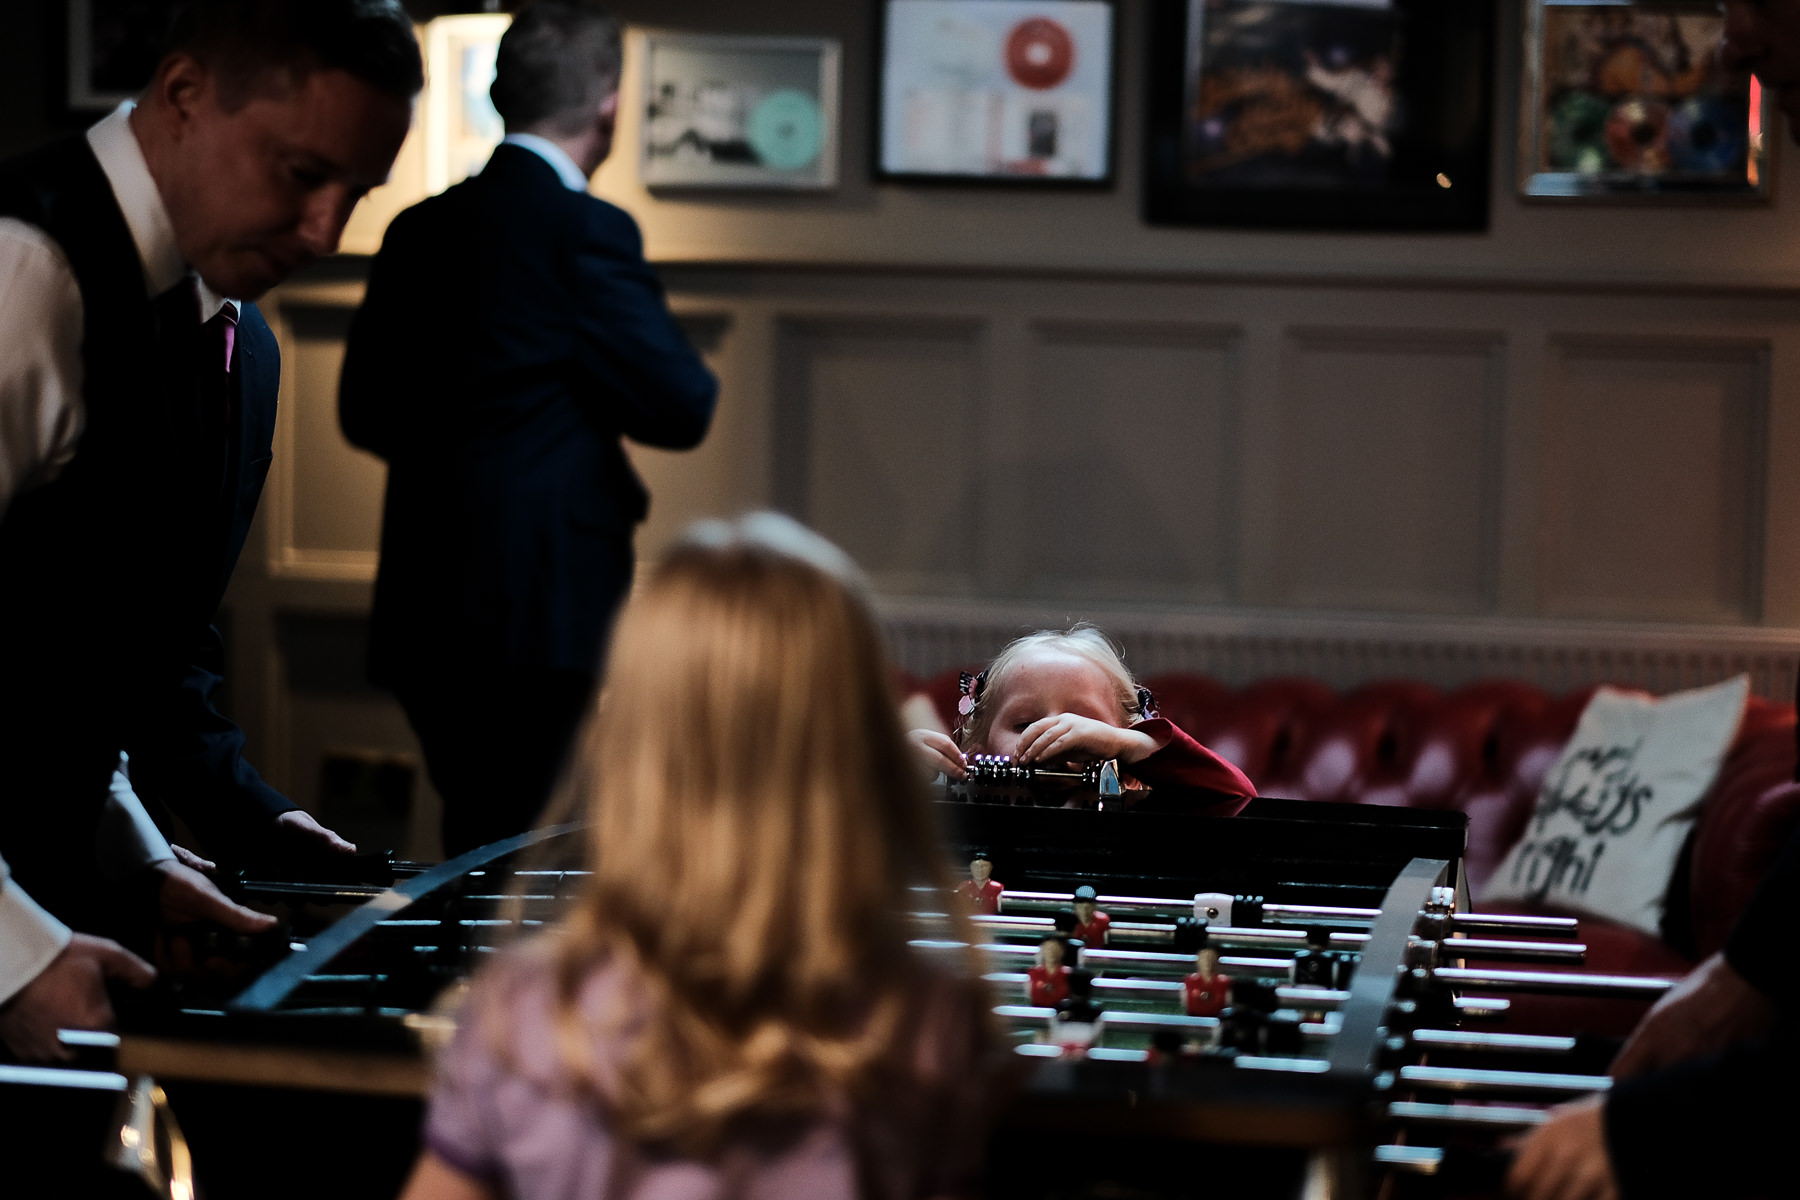 girl playing with foosball table